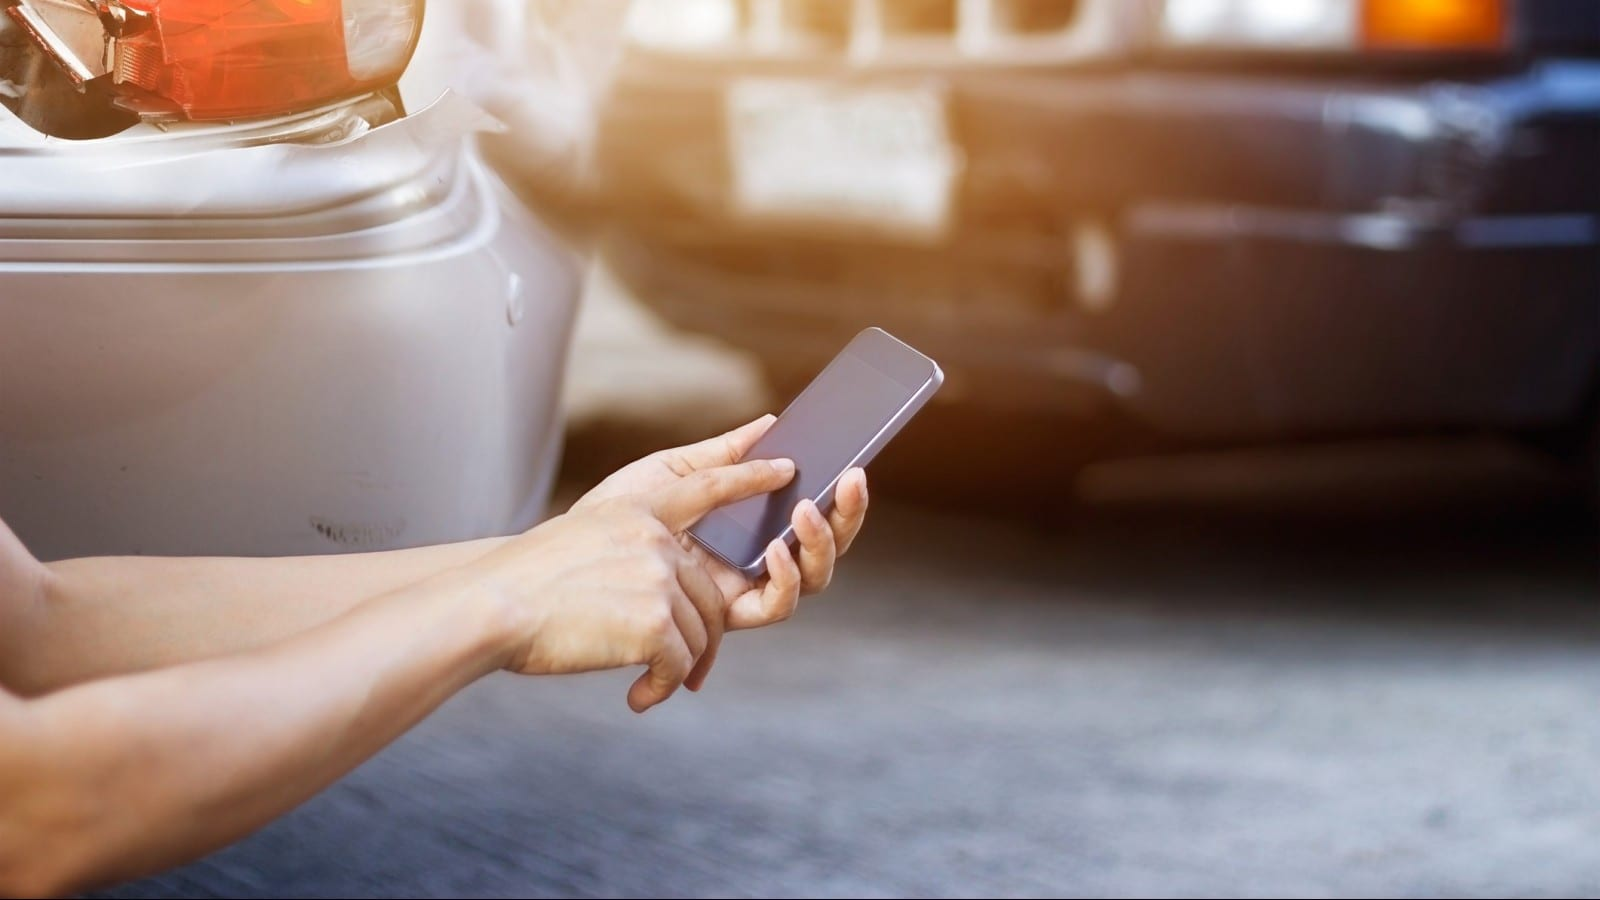 Smartphone Car Accident Stock Photo